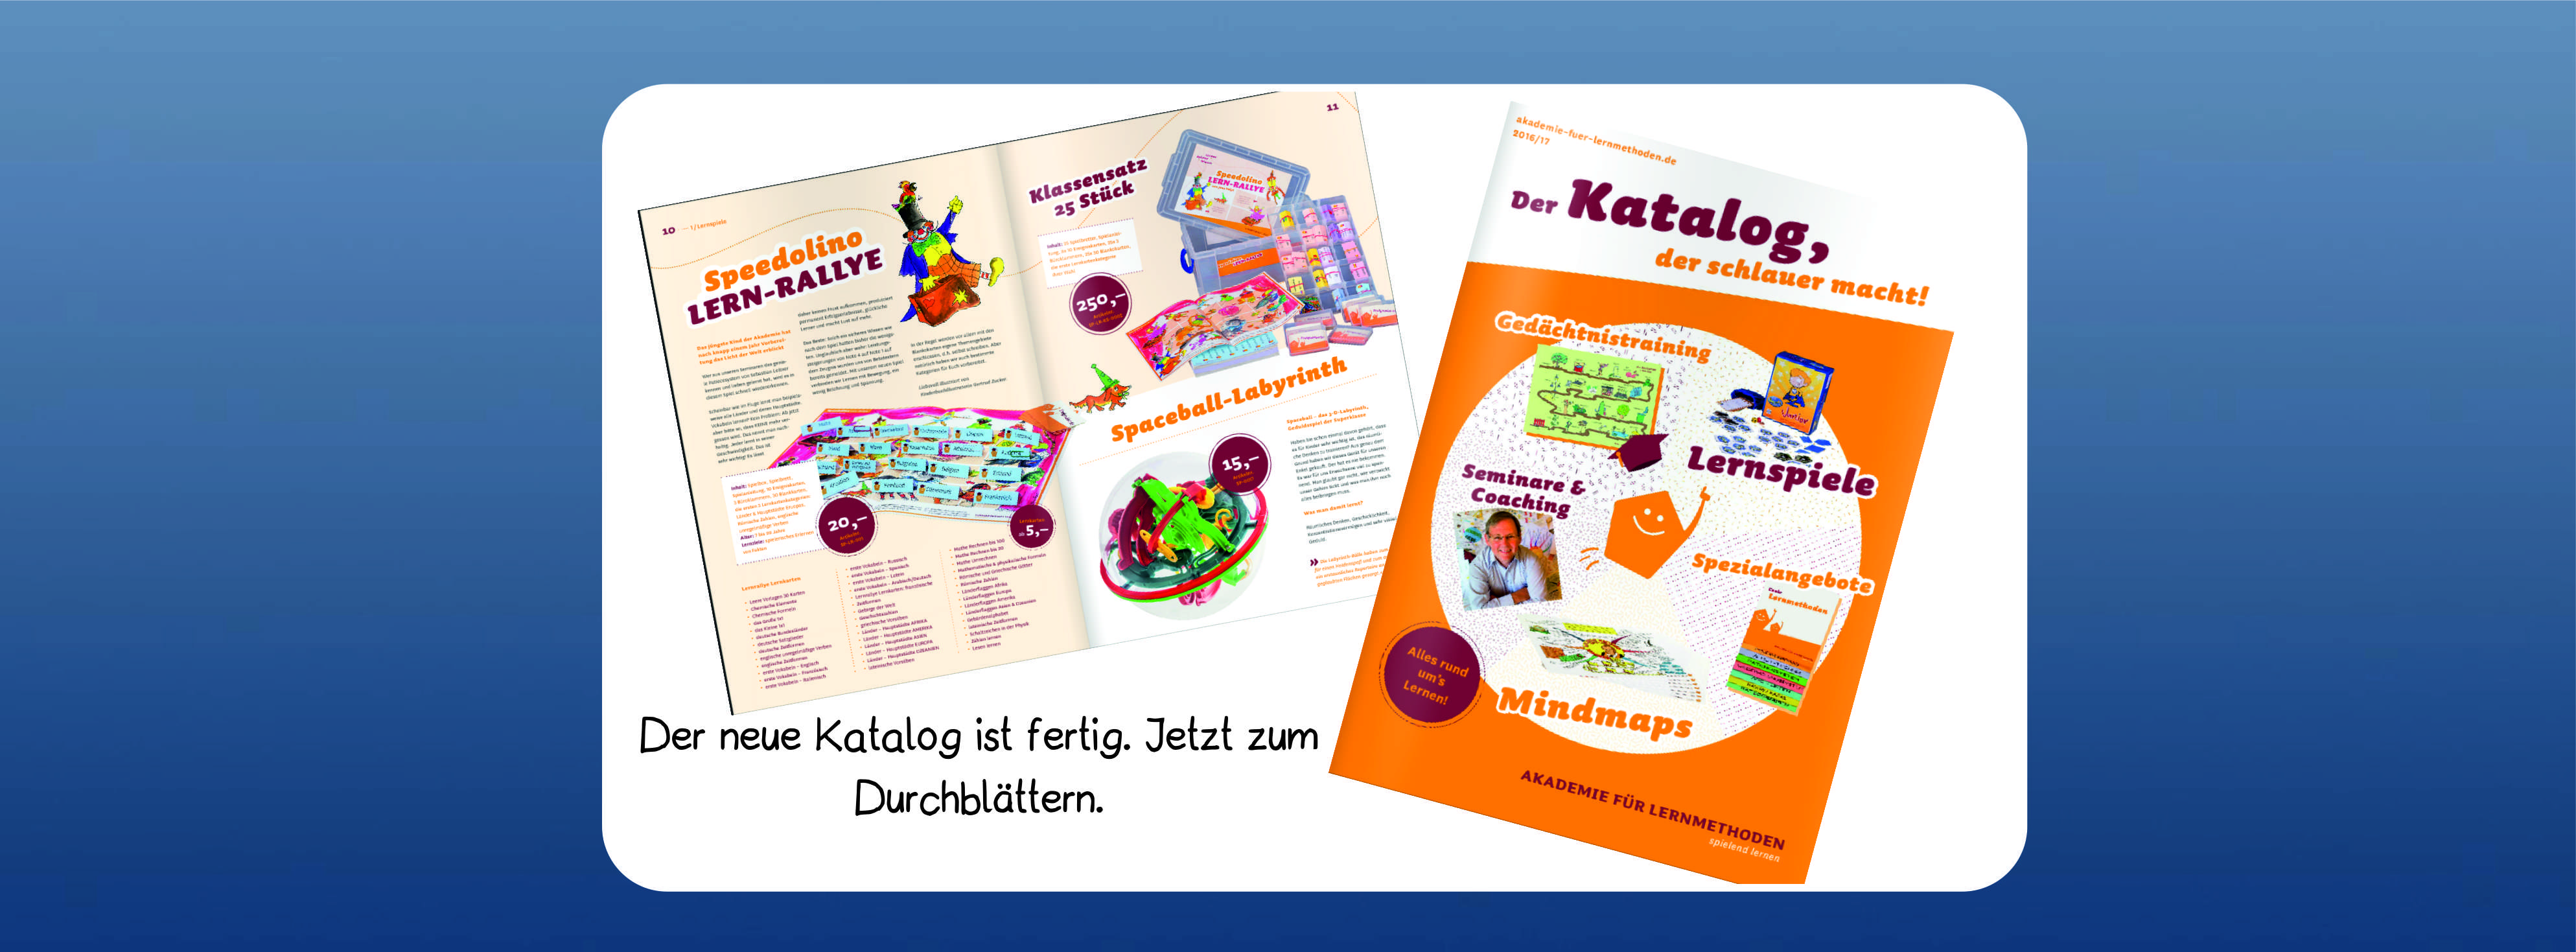 Das Bild zeigt den neuen Katalog der Lernwerkstatt